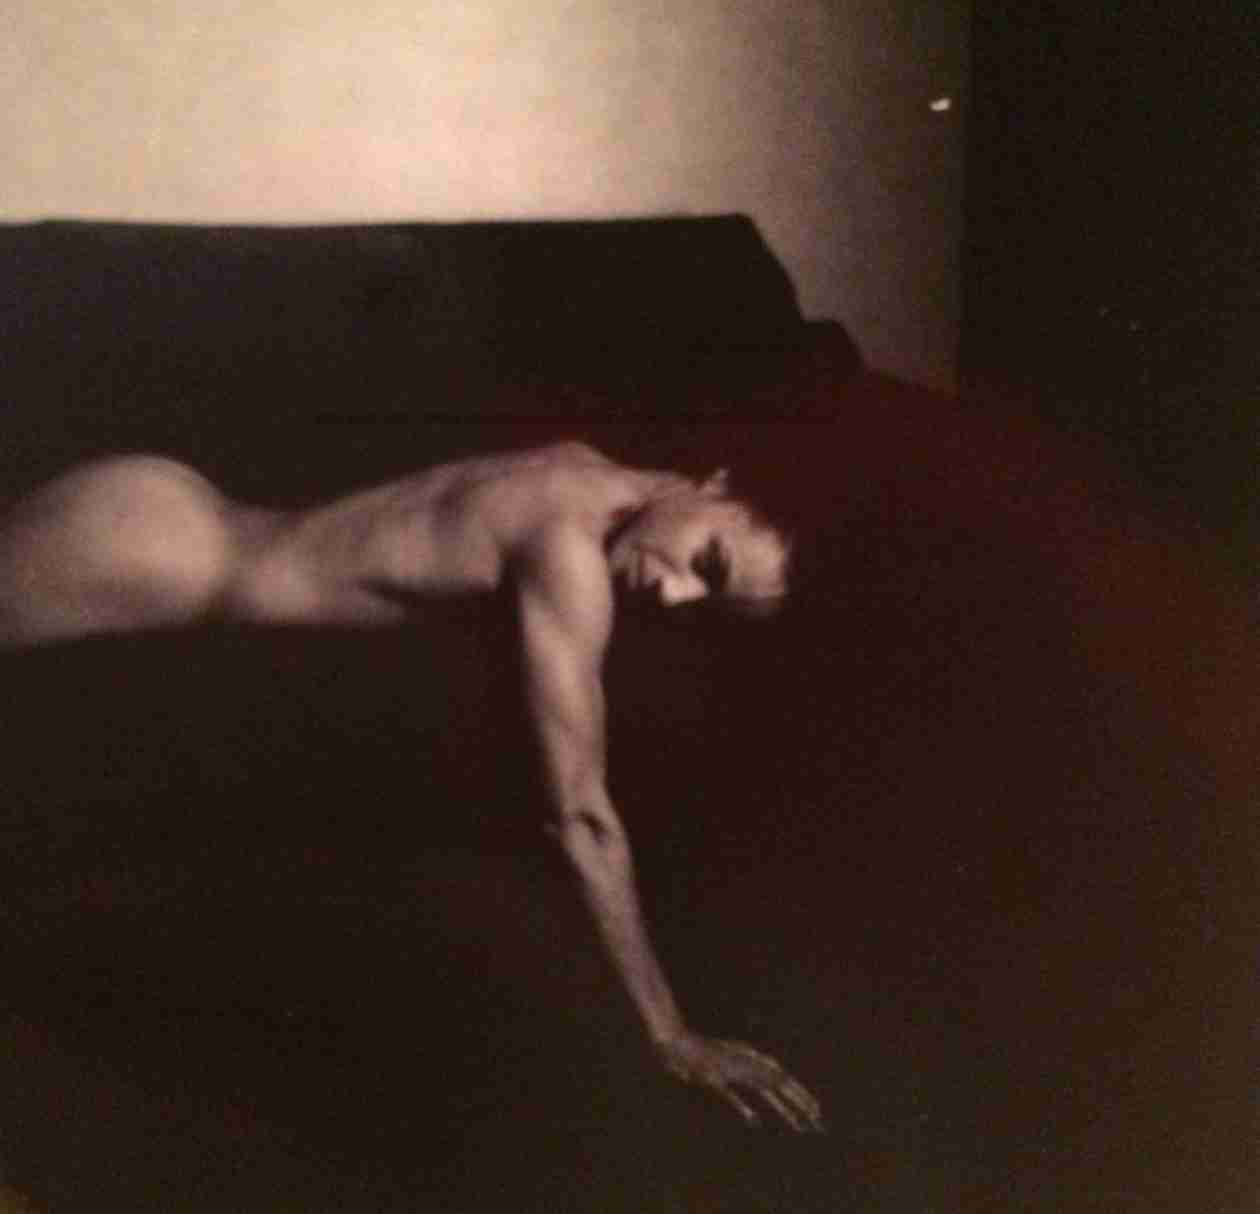 Jada Pinkett-Smith Goes Nude For Fans on Facebook! (PHOTO)